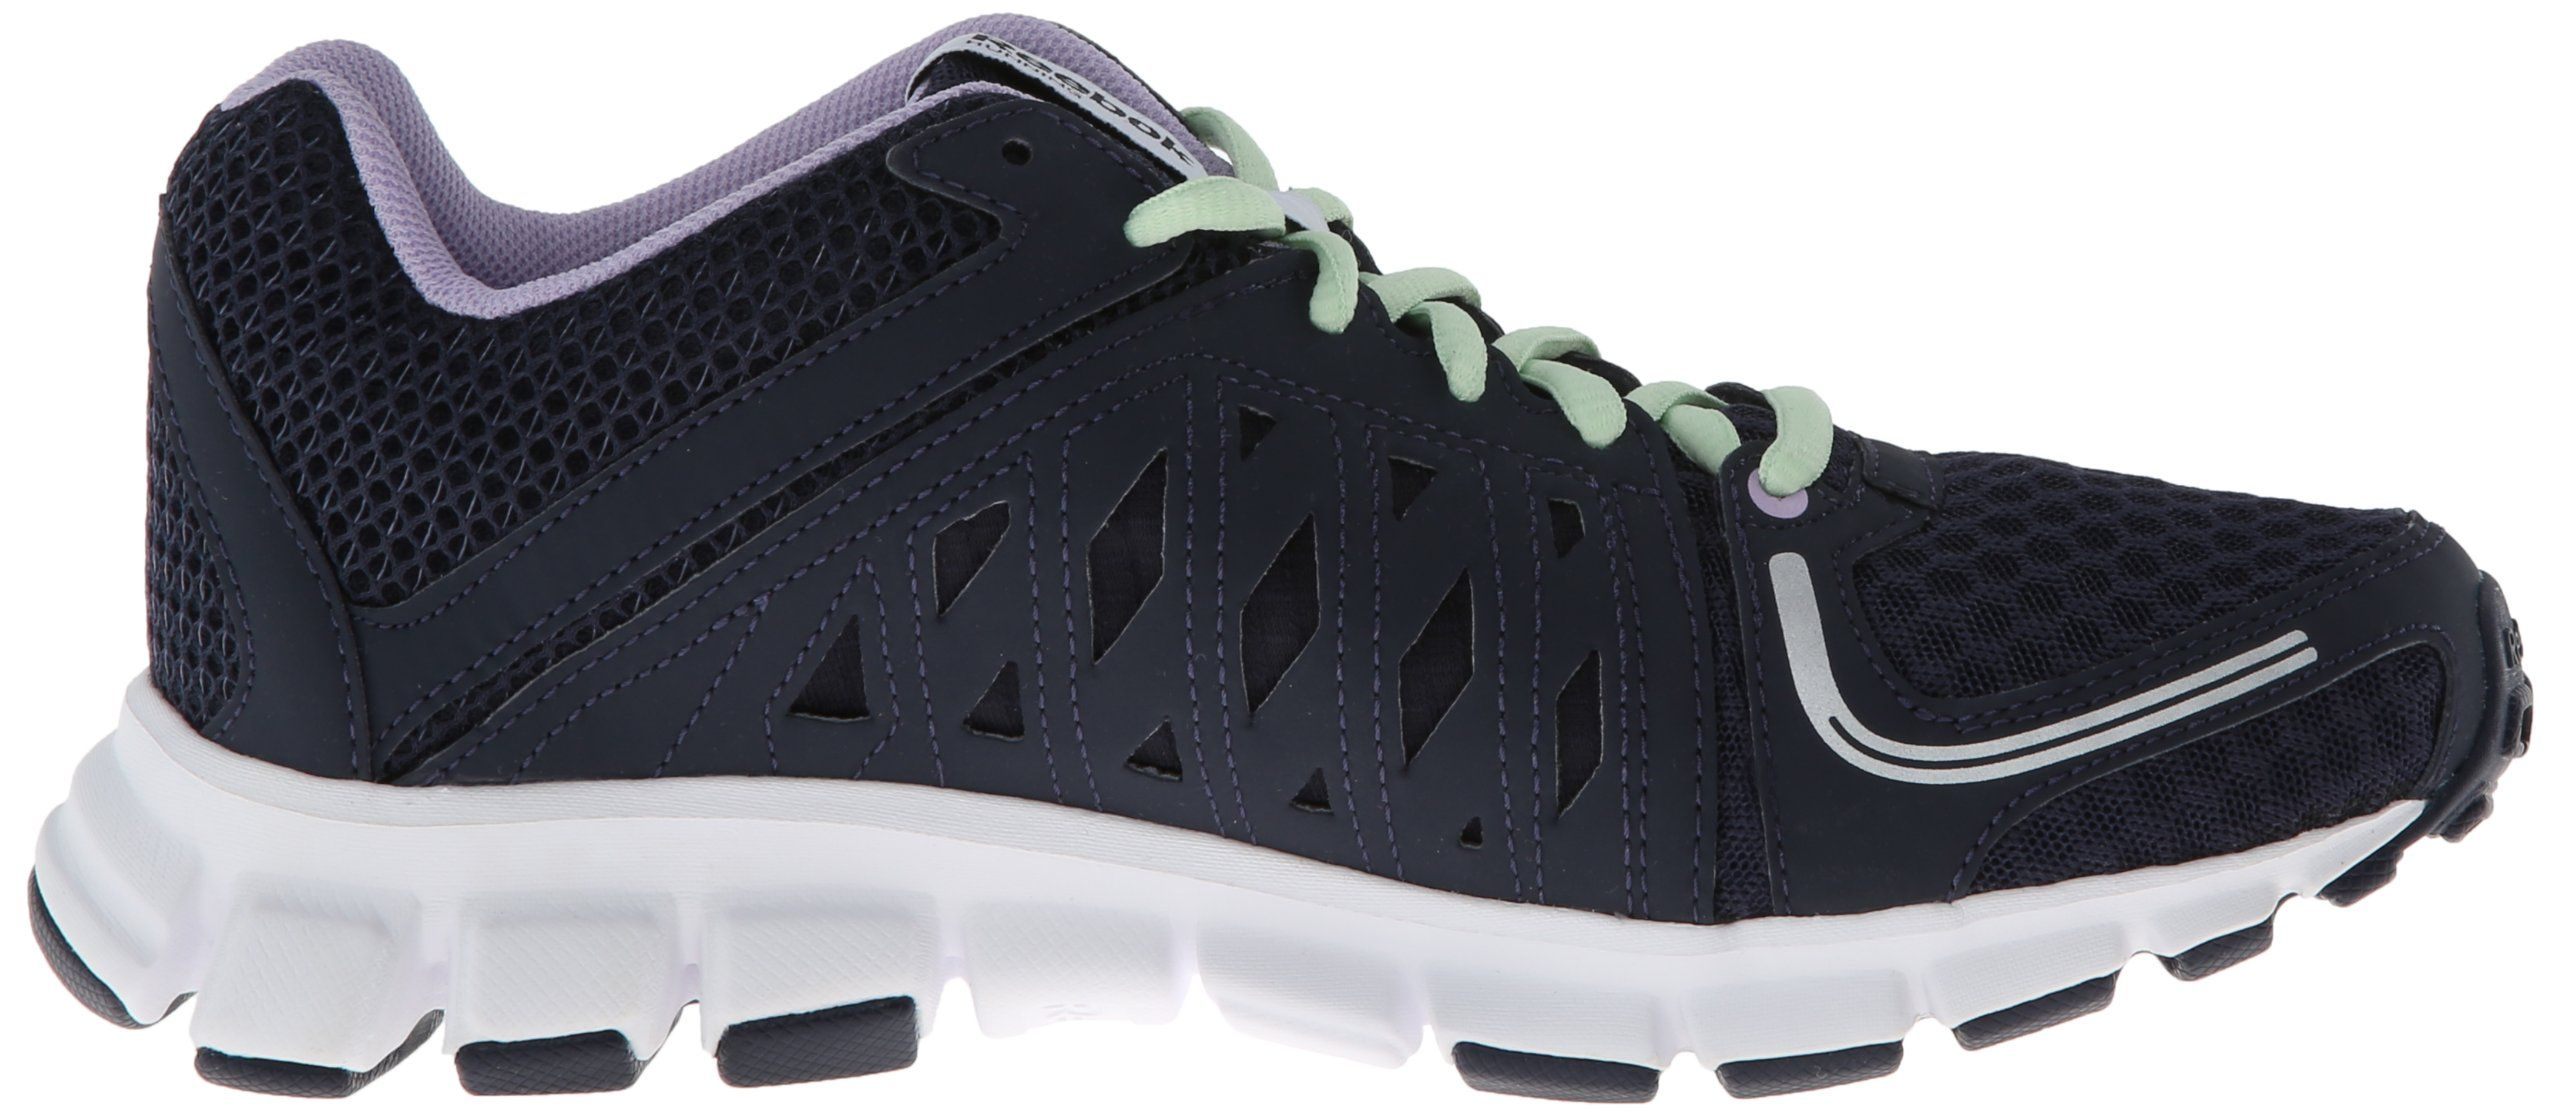 a5846e5d1218 Reebok Womens Smoothflex Flyer Running ShoeAthletic Navy Purple Oasis Sea  Glass Pure Silver White8.5 M US     Continue to the product at the image  link.